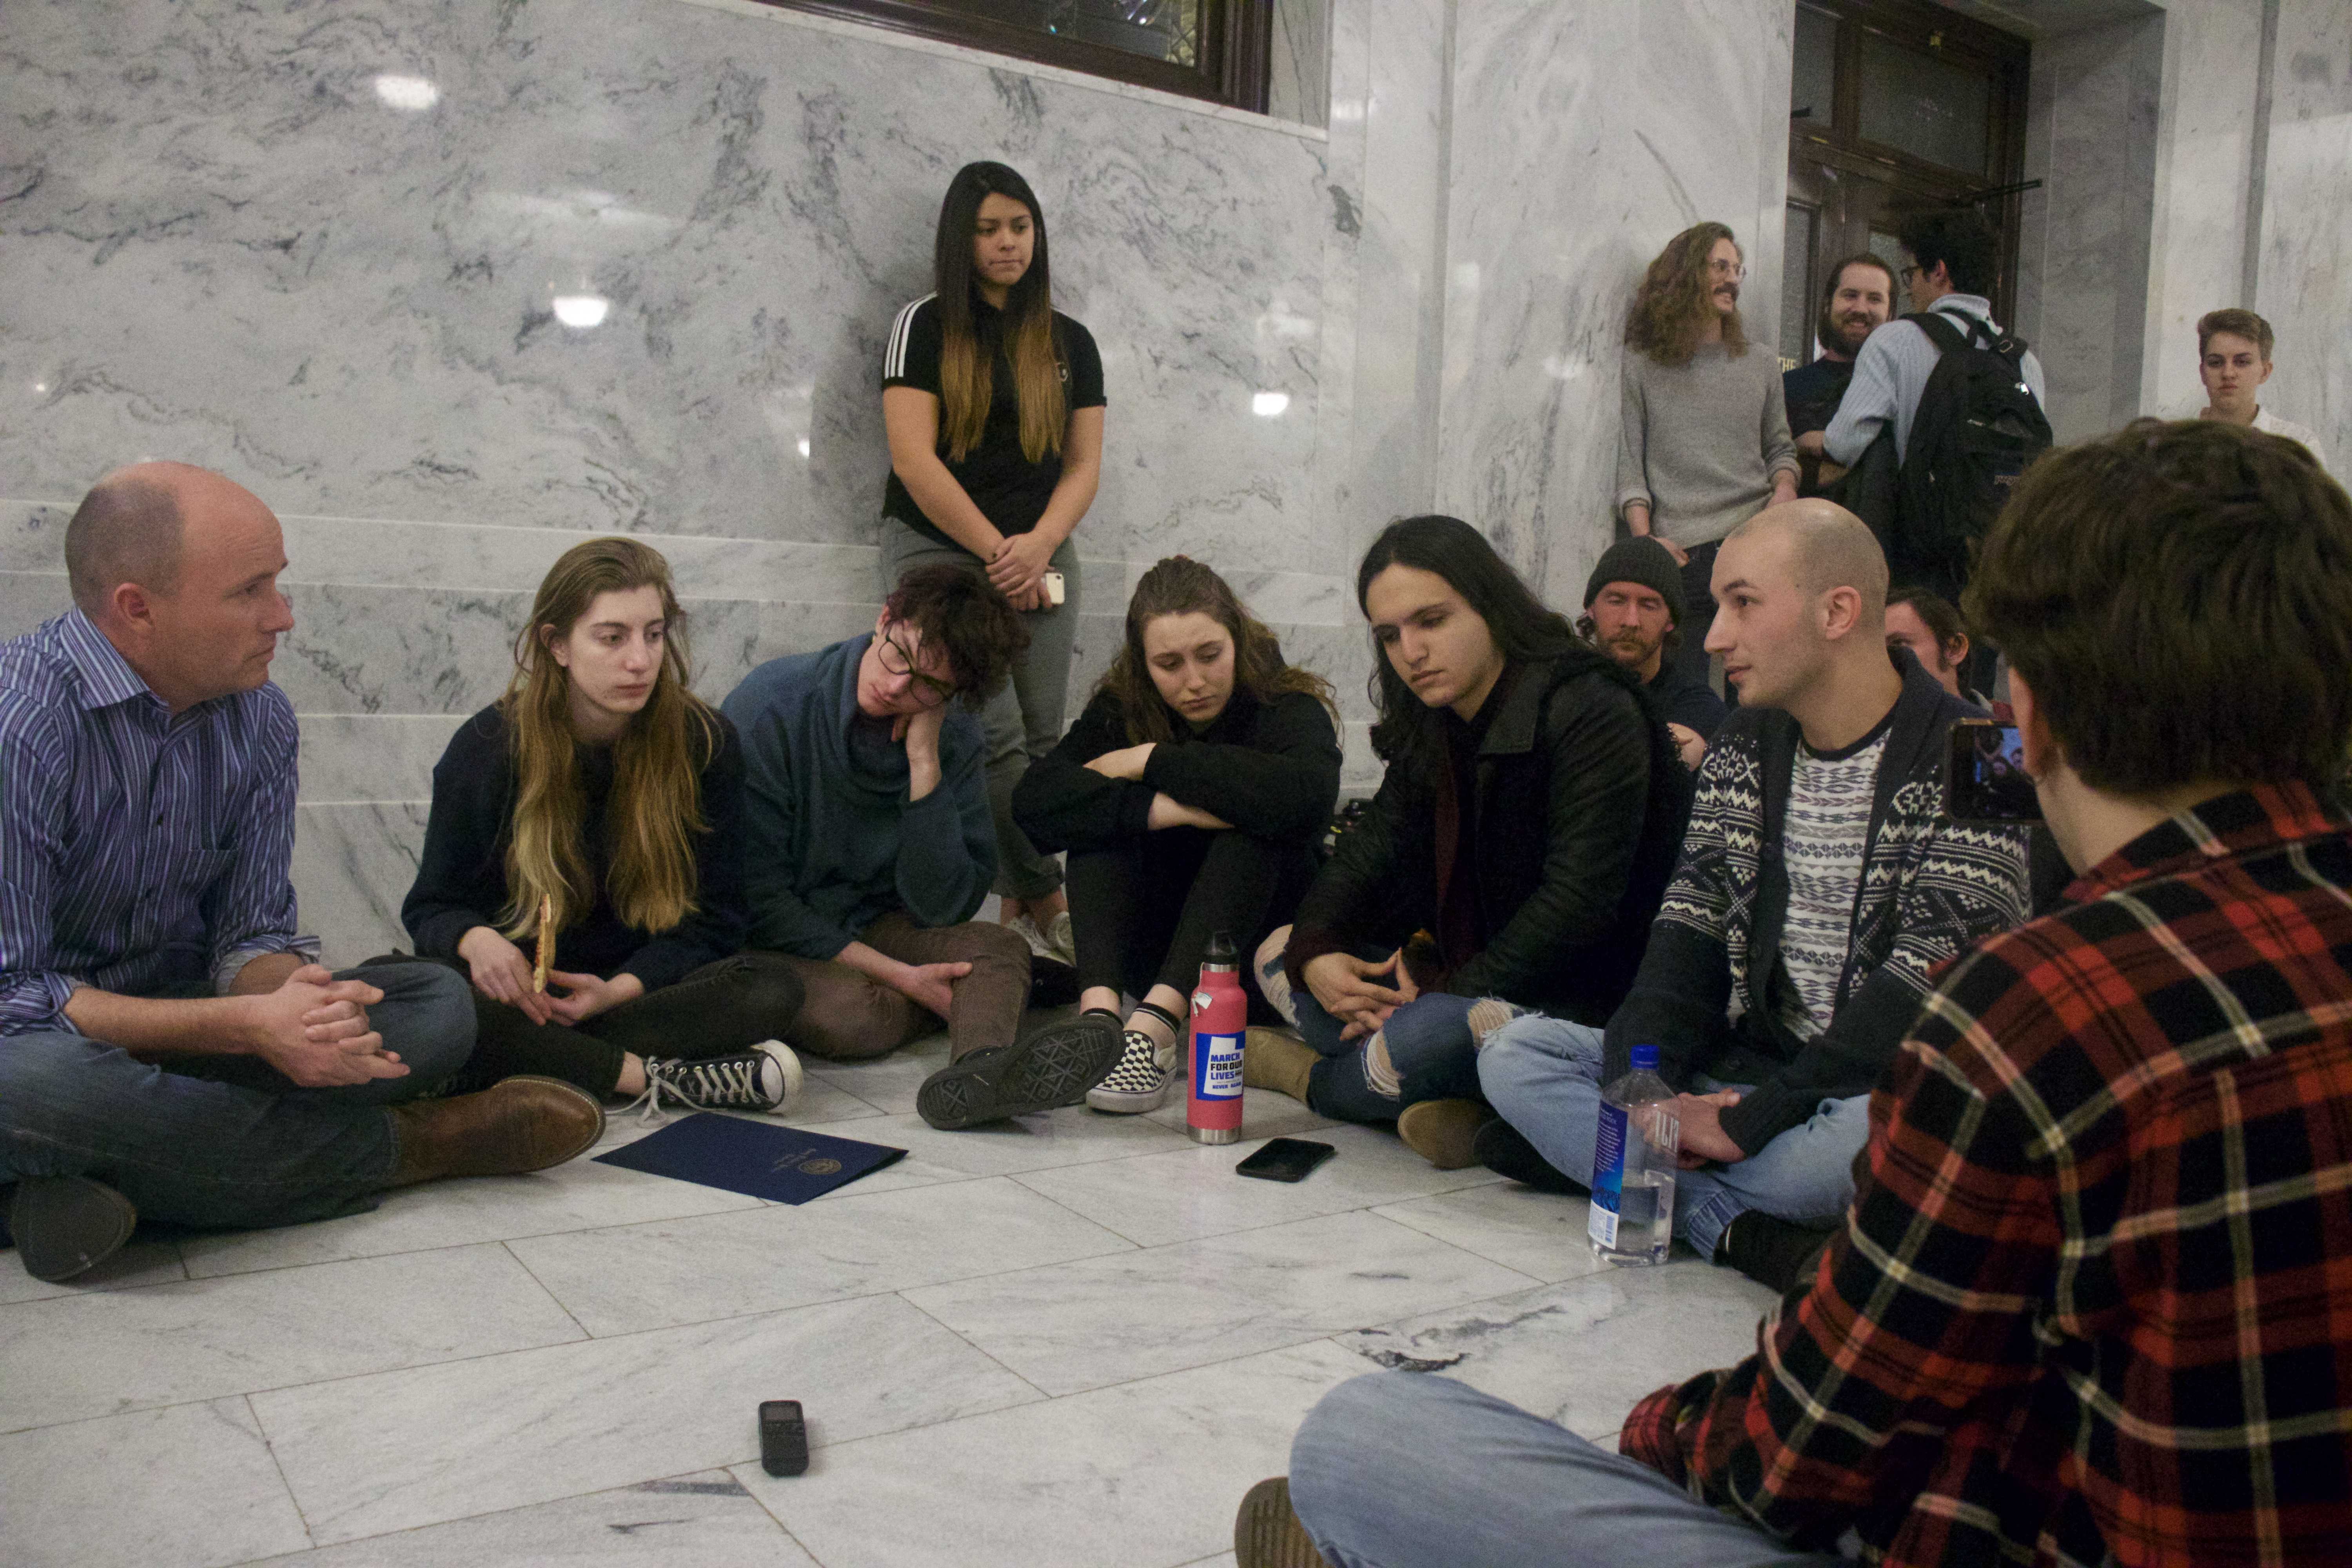 Lieutenant Gov. Spencer Cox sits with LGBTQ youth protesting conversion therapy outside of the governor's offices at the Utah Capitol.